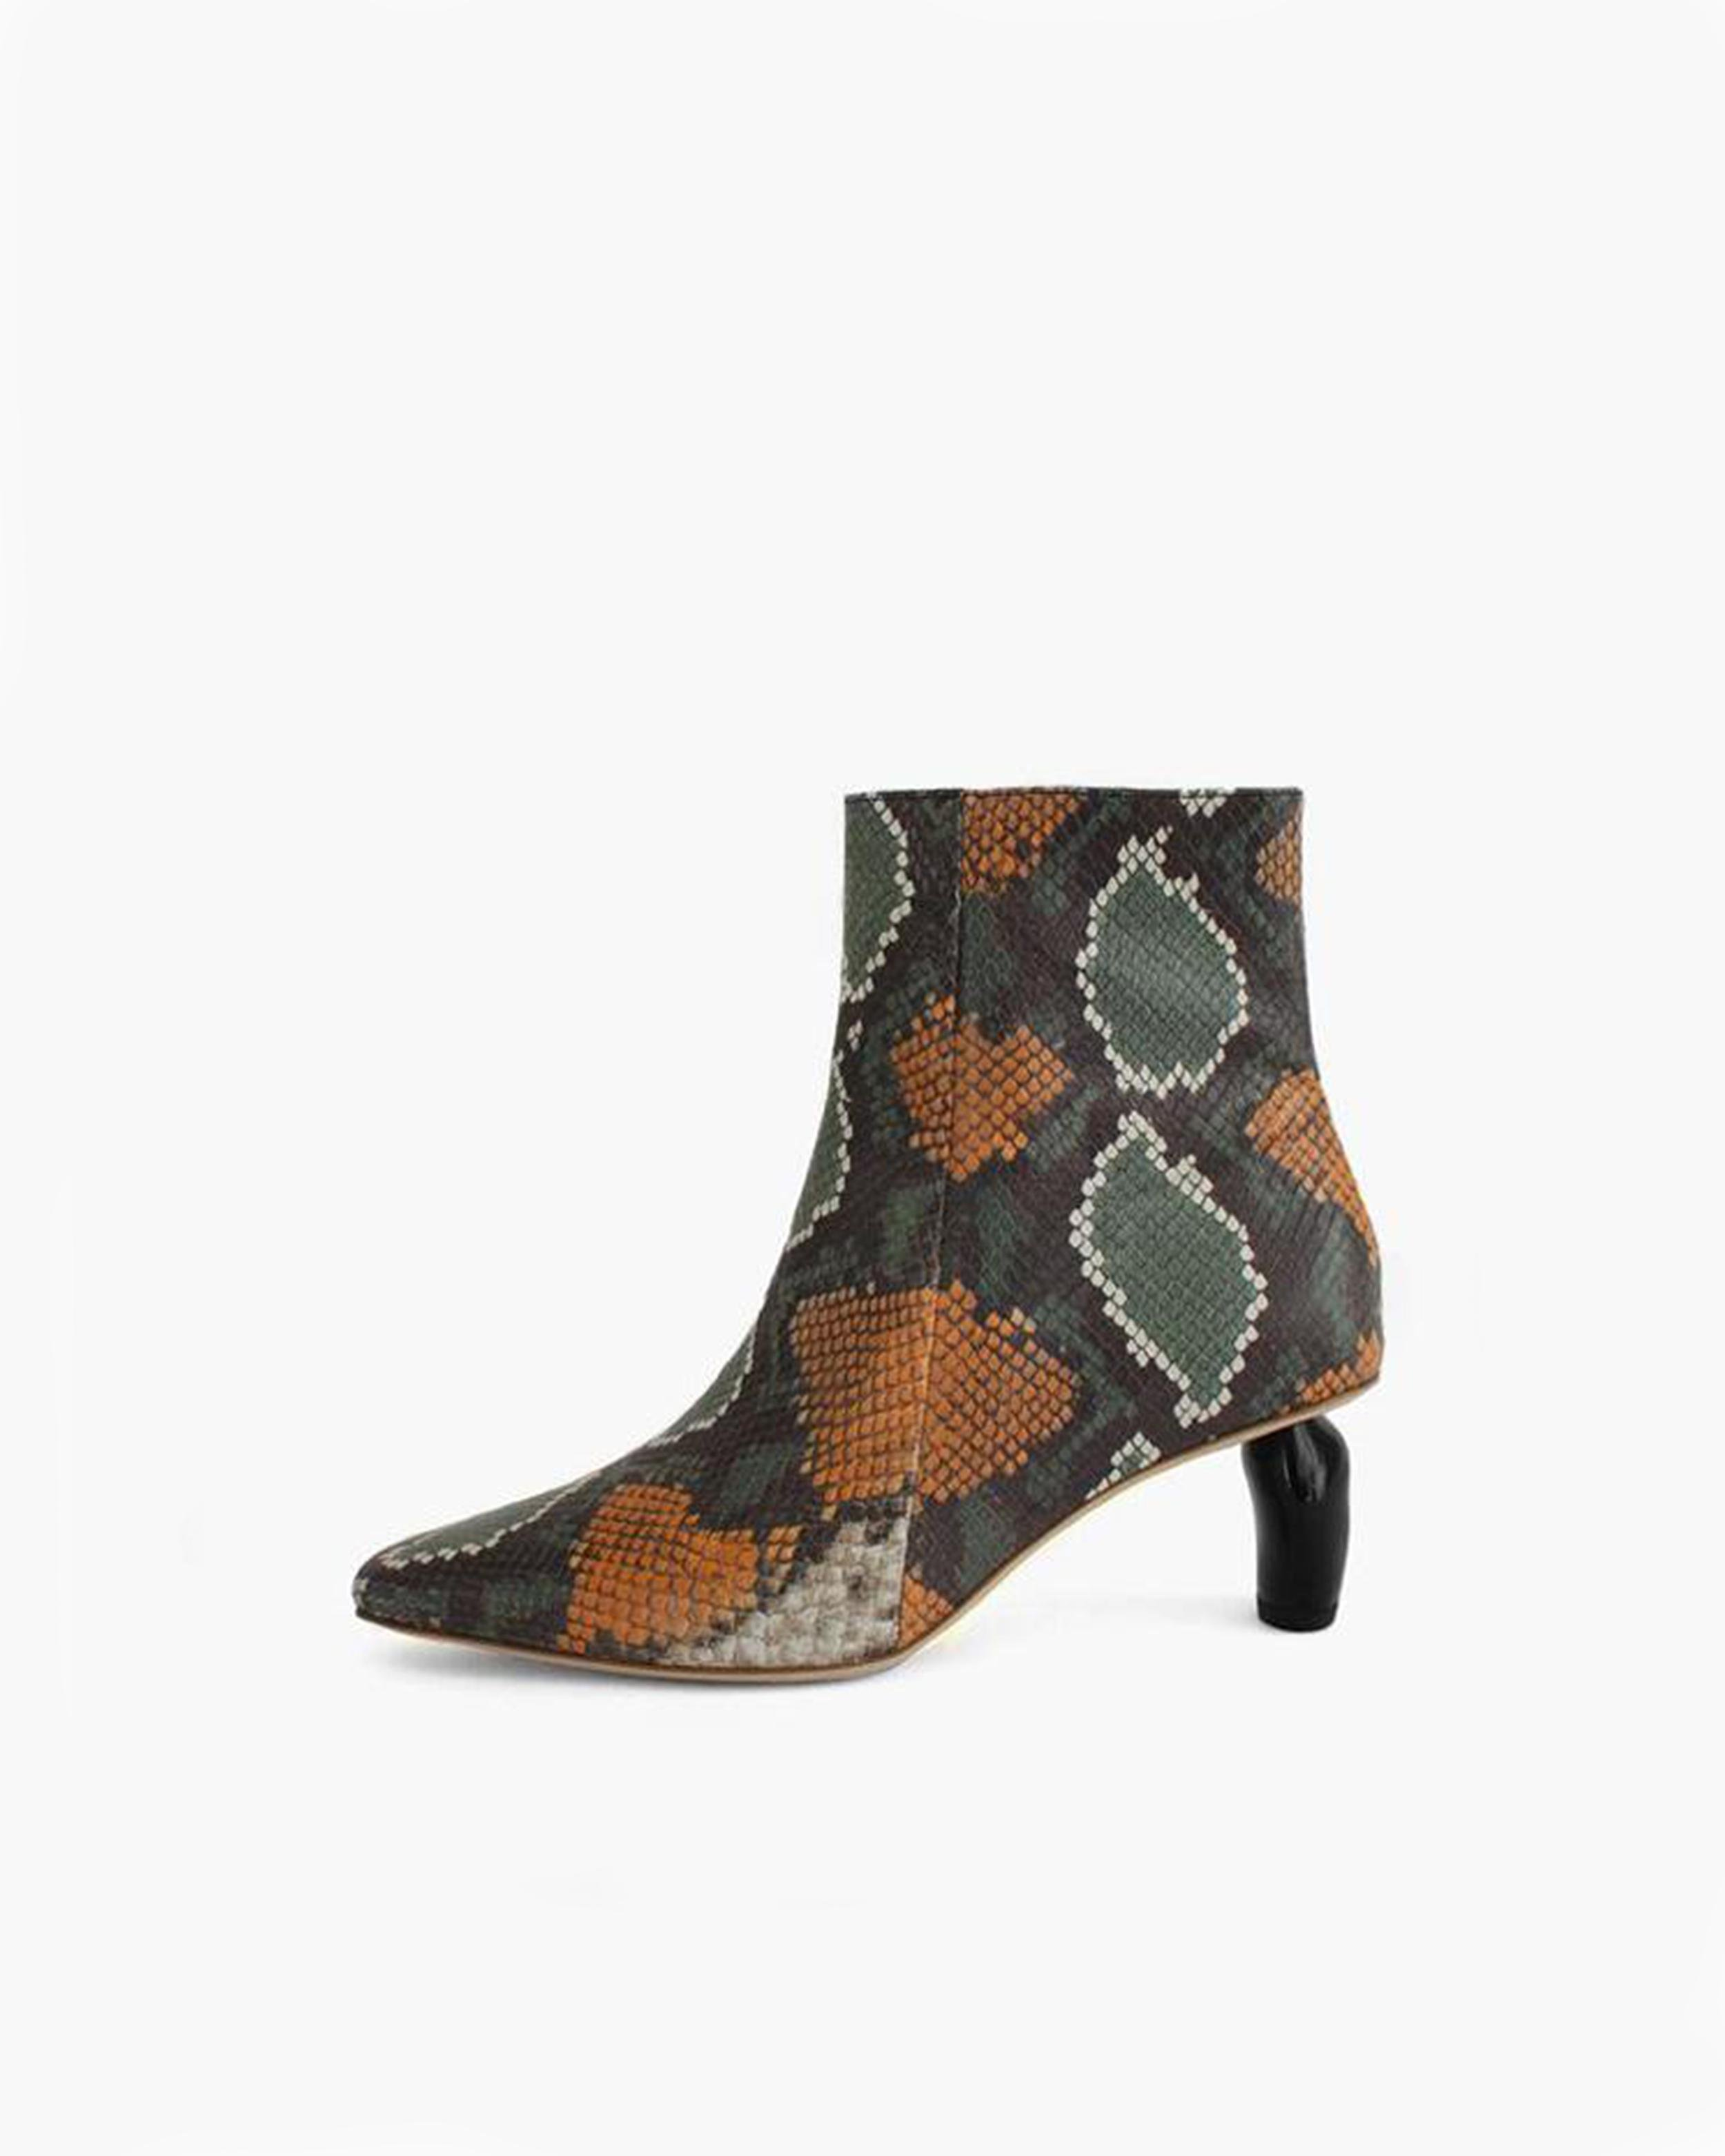 Annie Boots Leather Snake Multi with Black Heels